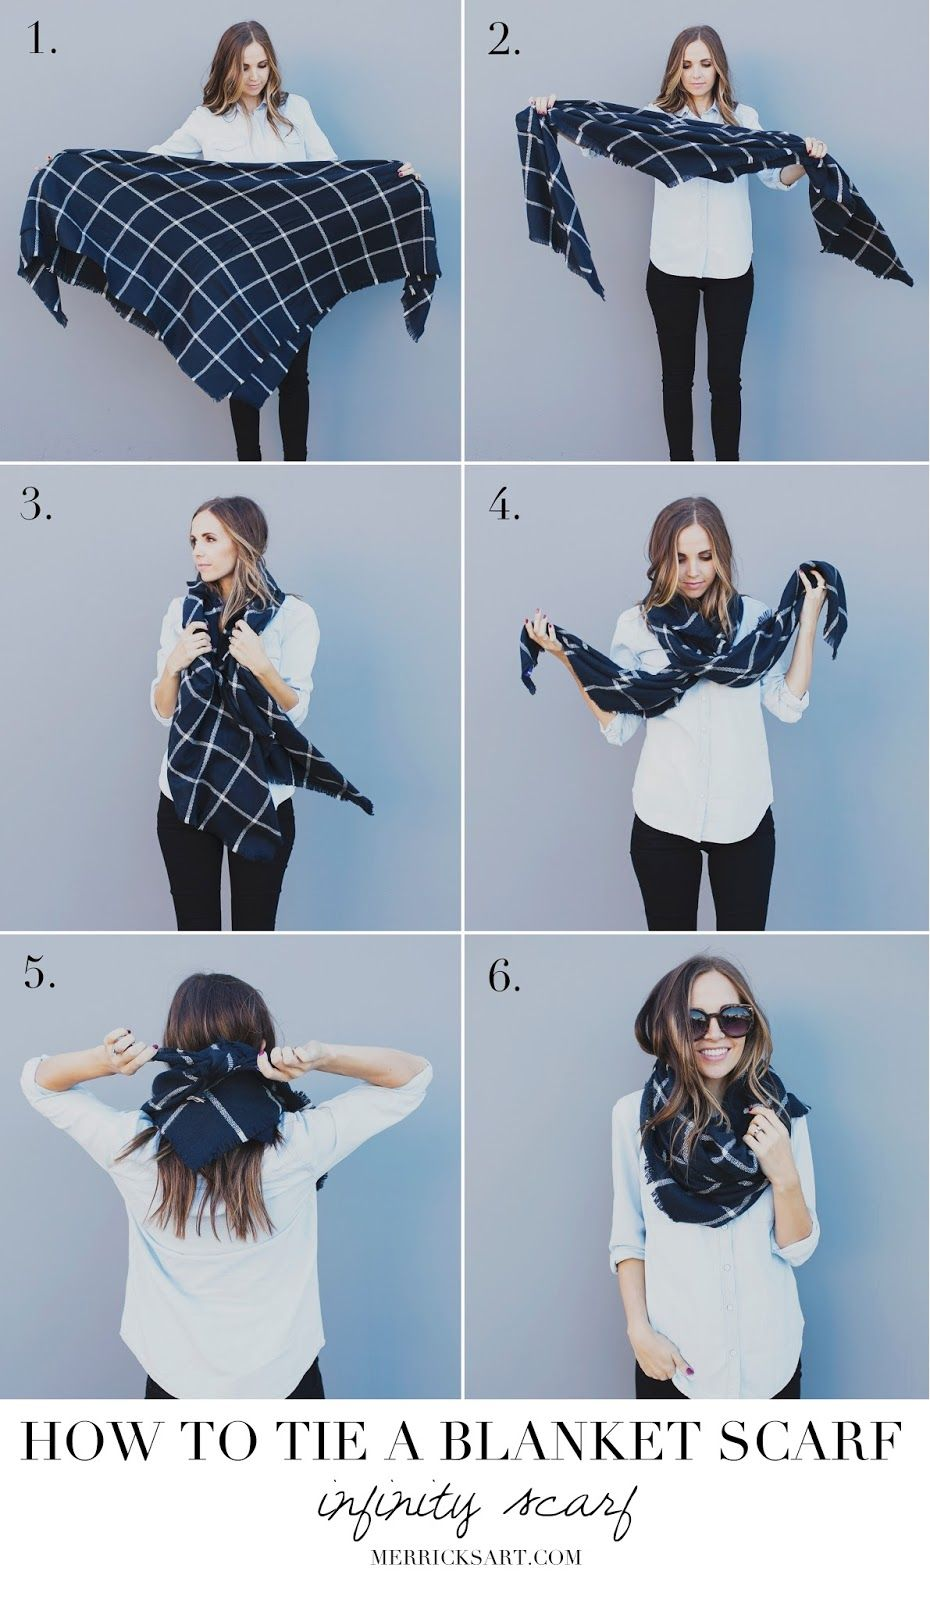 How to tie your blanket scarf into an infinity scarf b6efc7ad0d3ab